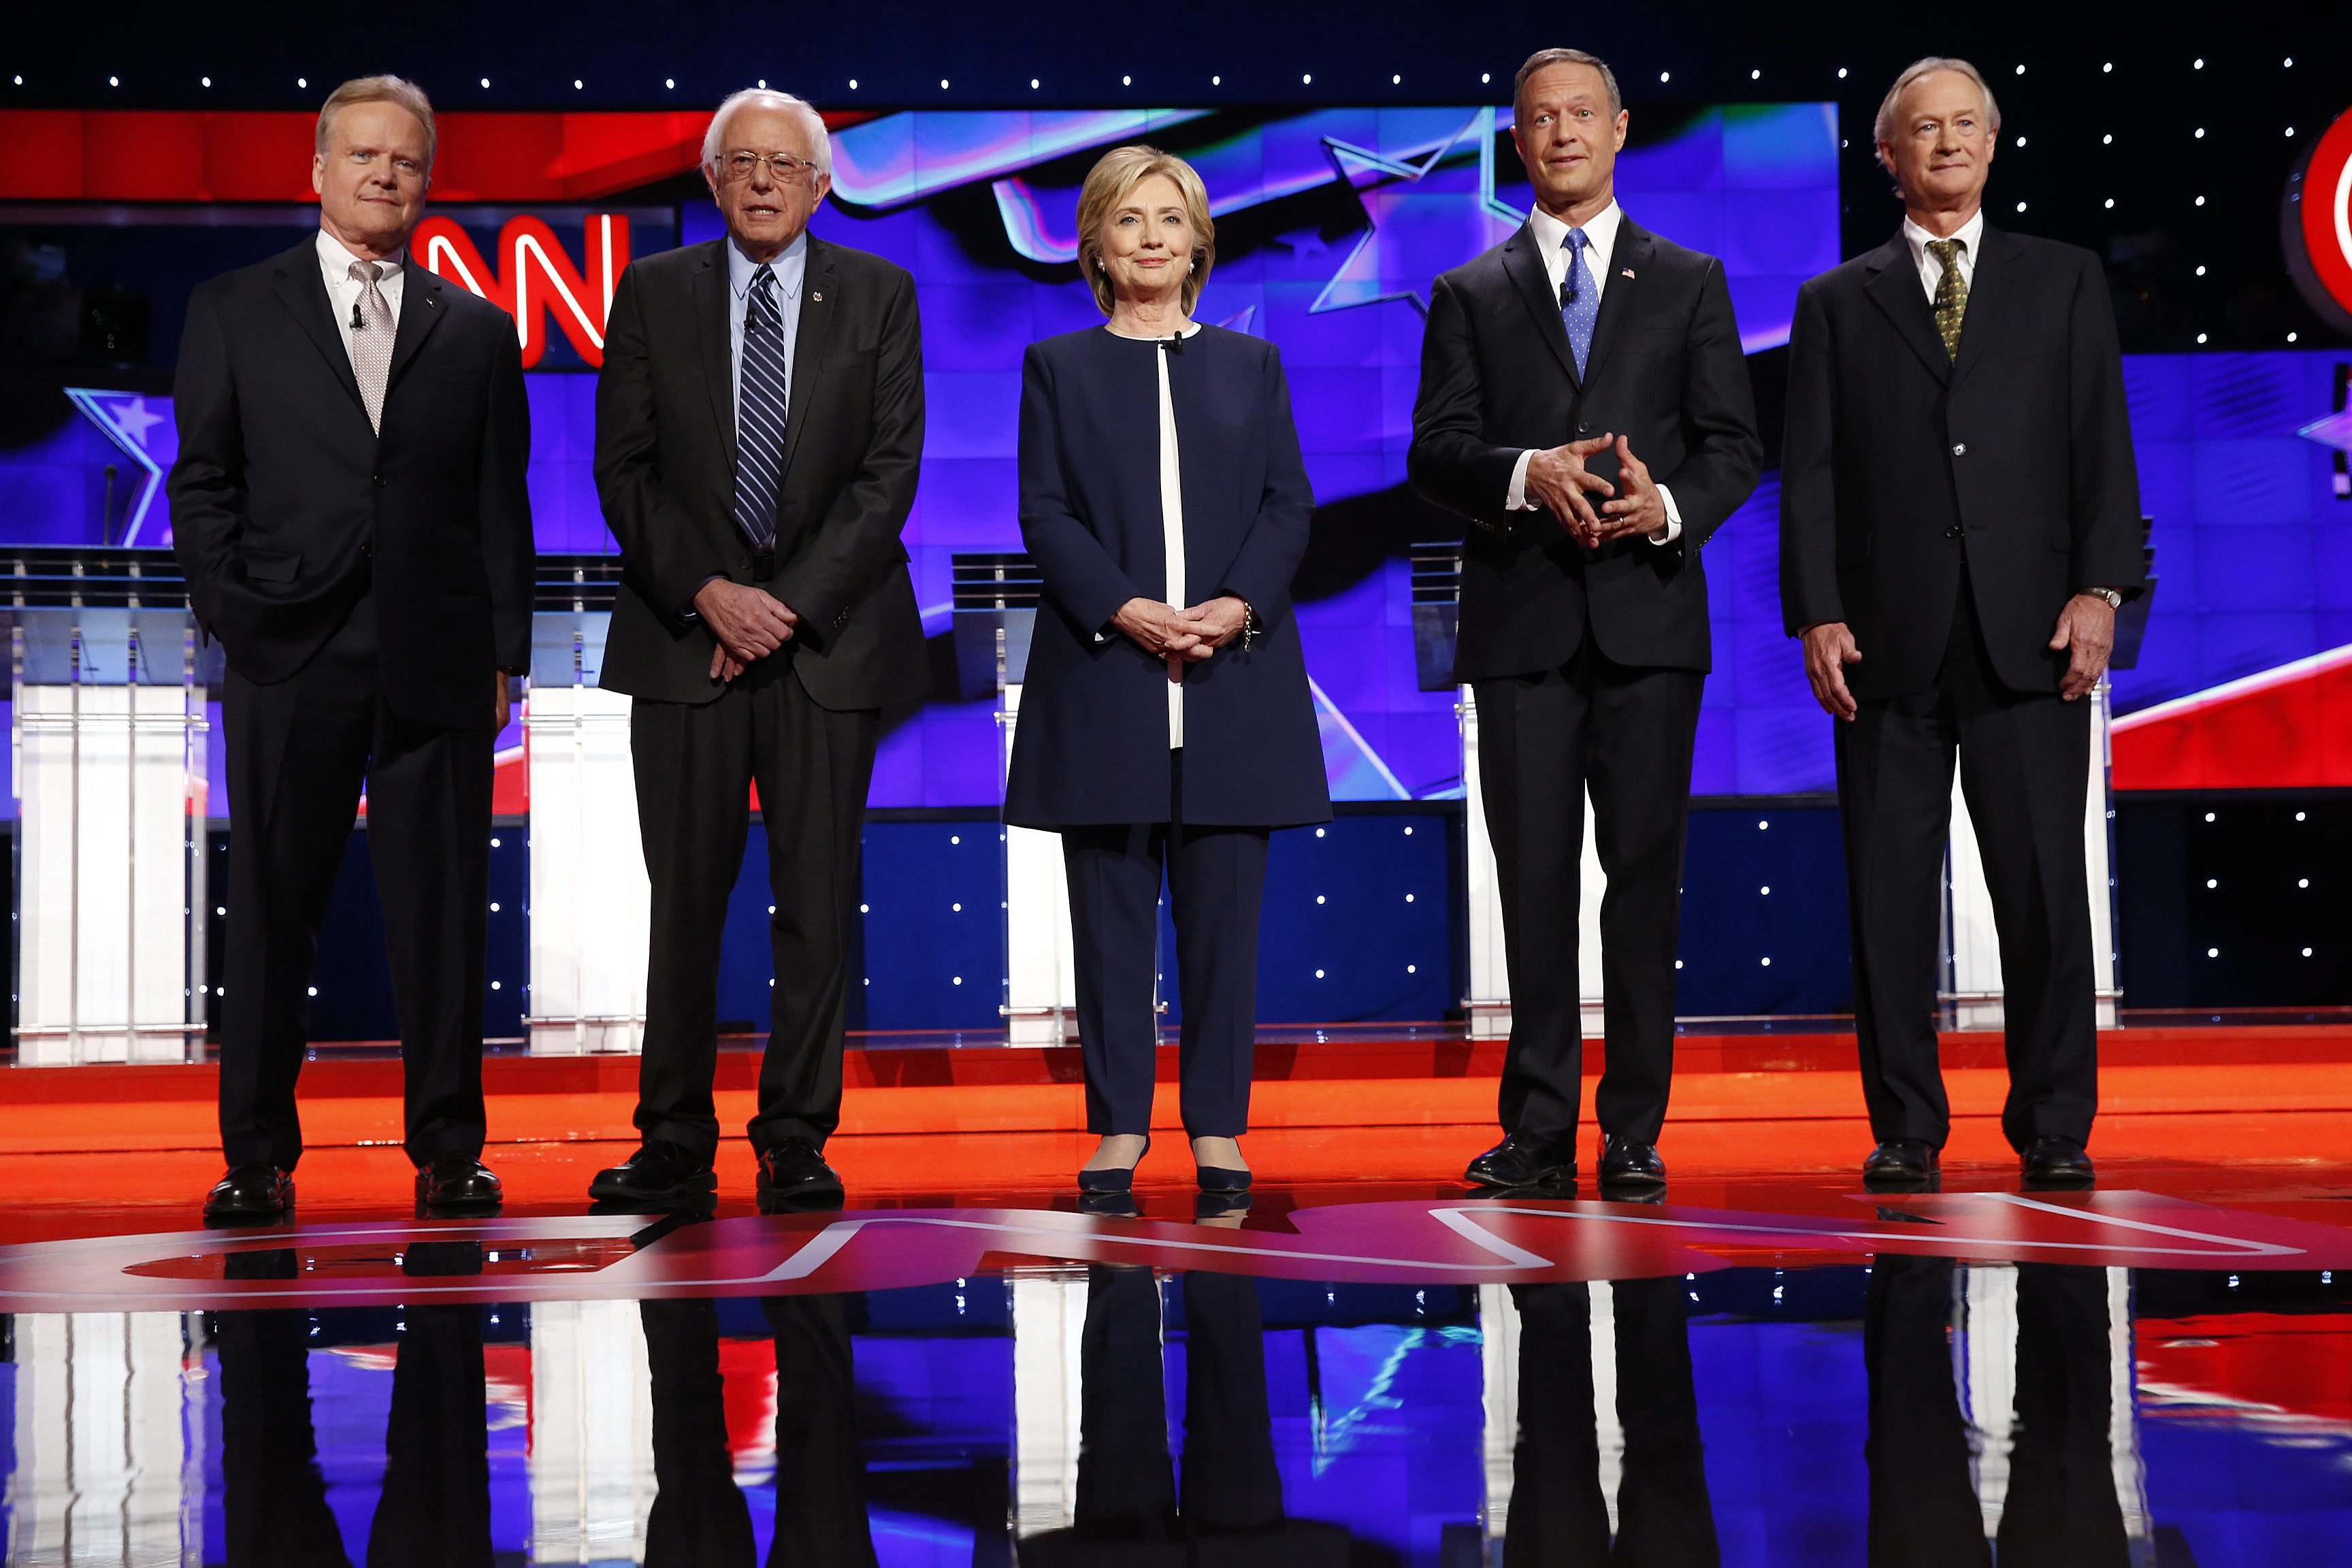 (L-R) Former Virginia Senator Jim Webb,  Vermont Senator Bernie Sanders, former US Secretary of State Hillary Clinton, former Maryland Governor Martin O'Malley and former Rhode Island Governor Lincoln Chafee during the national anthem at the start of the US Democratic Presidential  candidates debate at Wynn Las Vegas in Las Vegas, Nevada, on Oct. 13 2015.